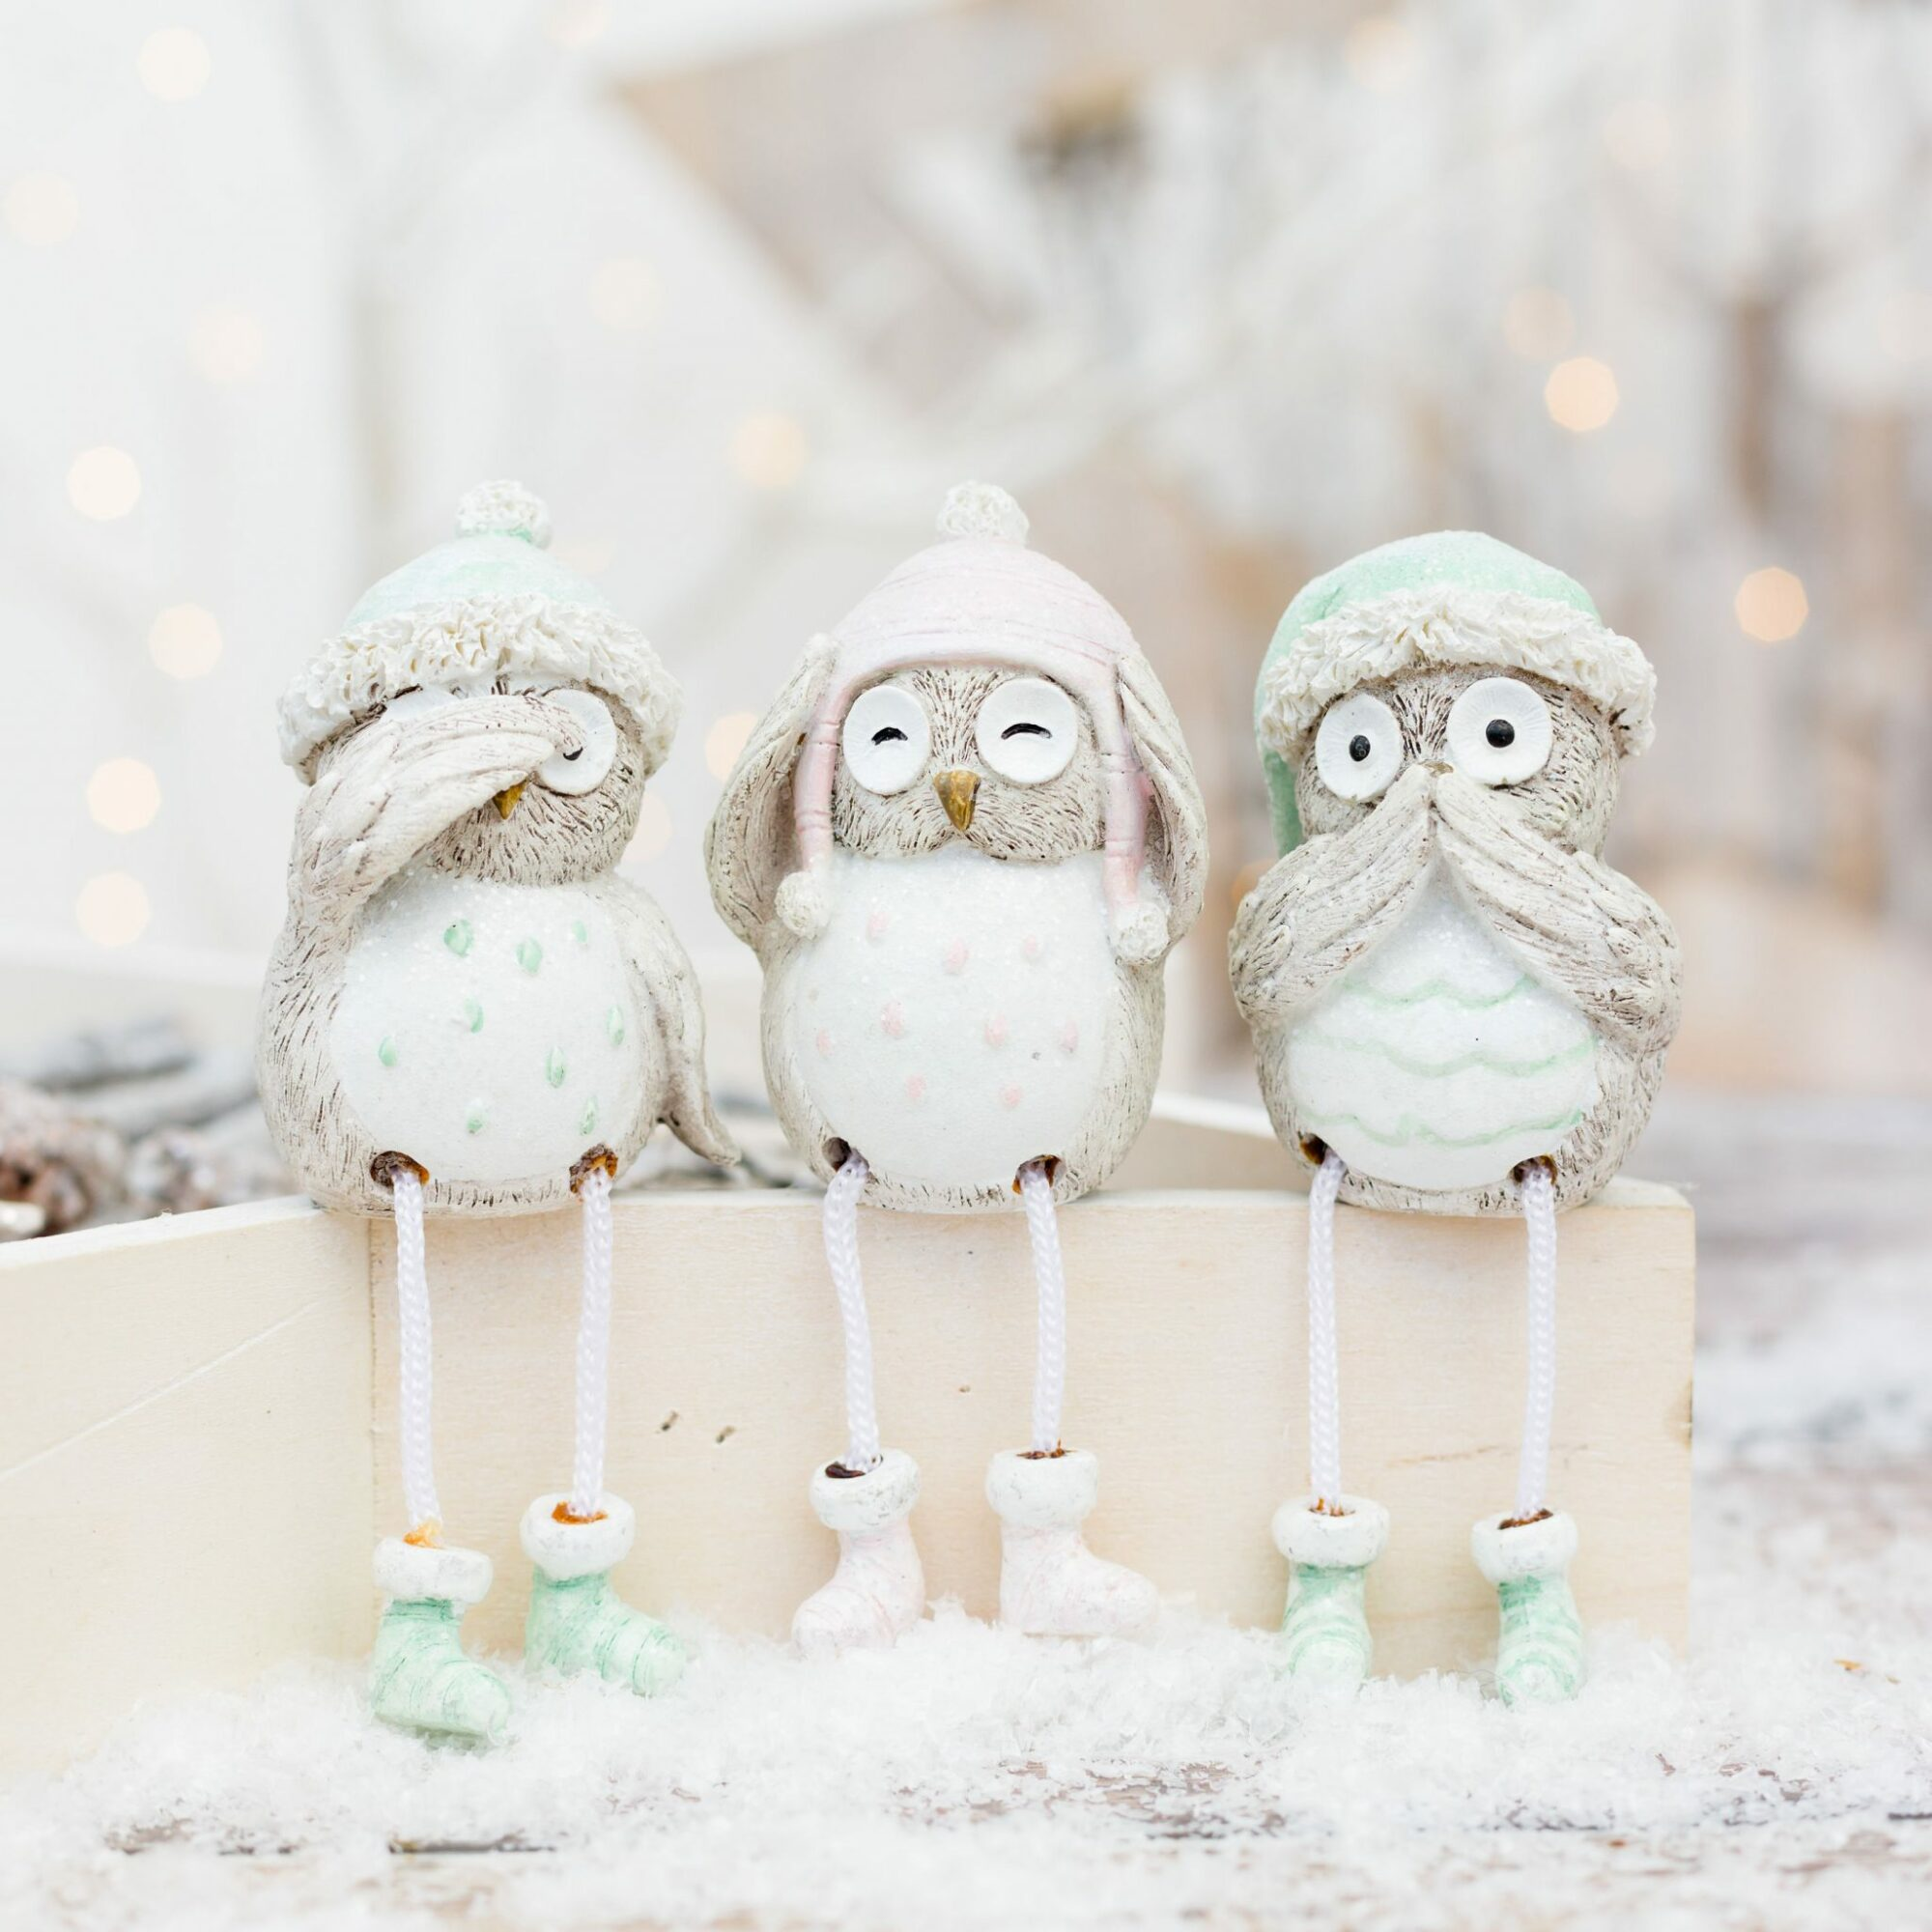 Set of 3 Christmas Shelf Sitting Owls with Pastel Hats